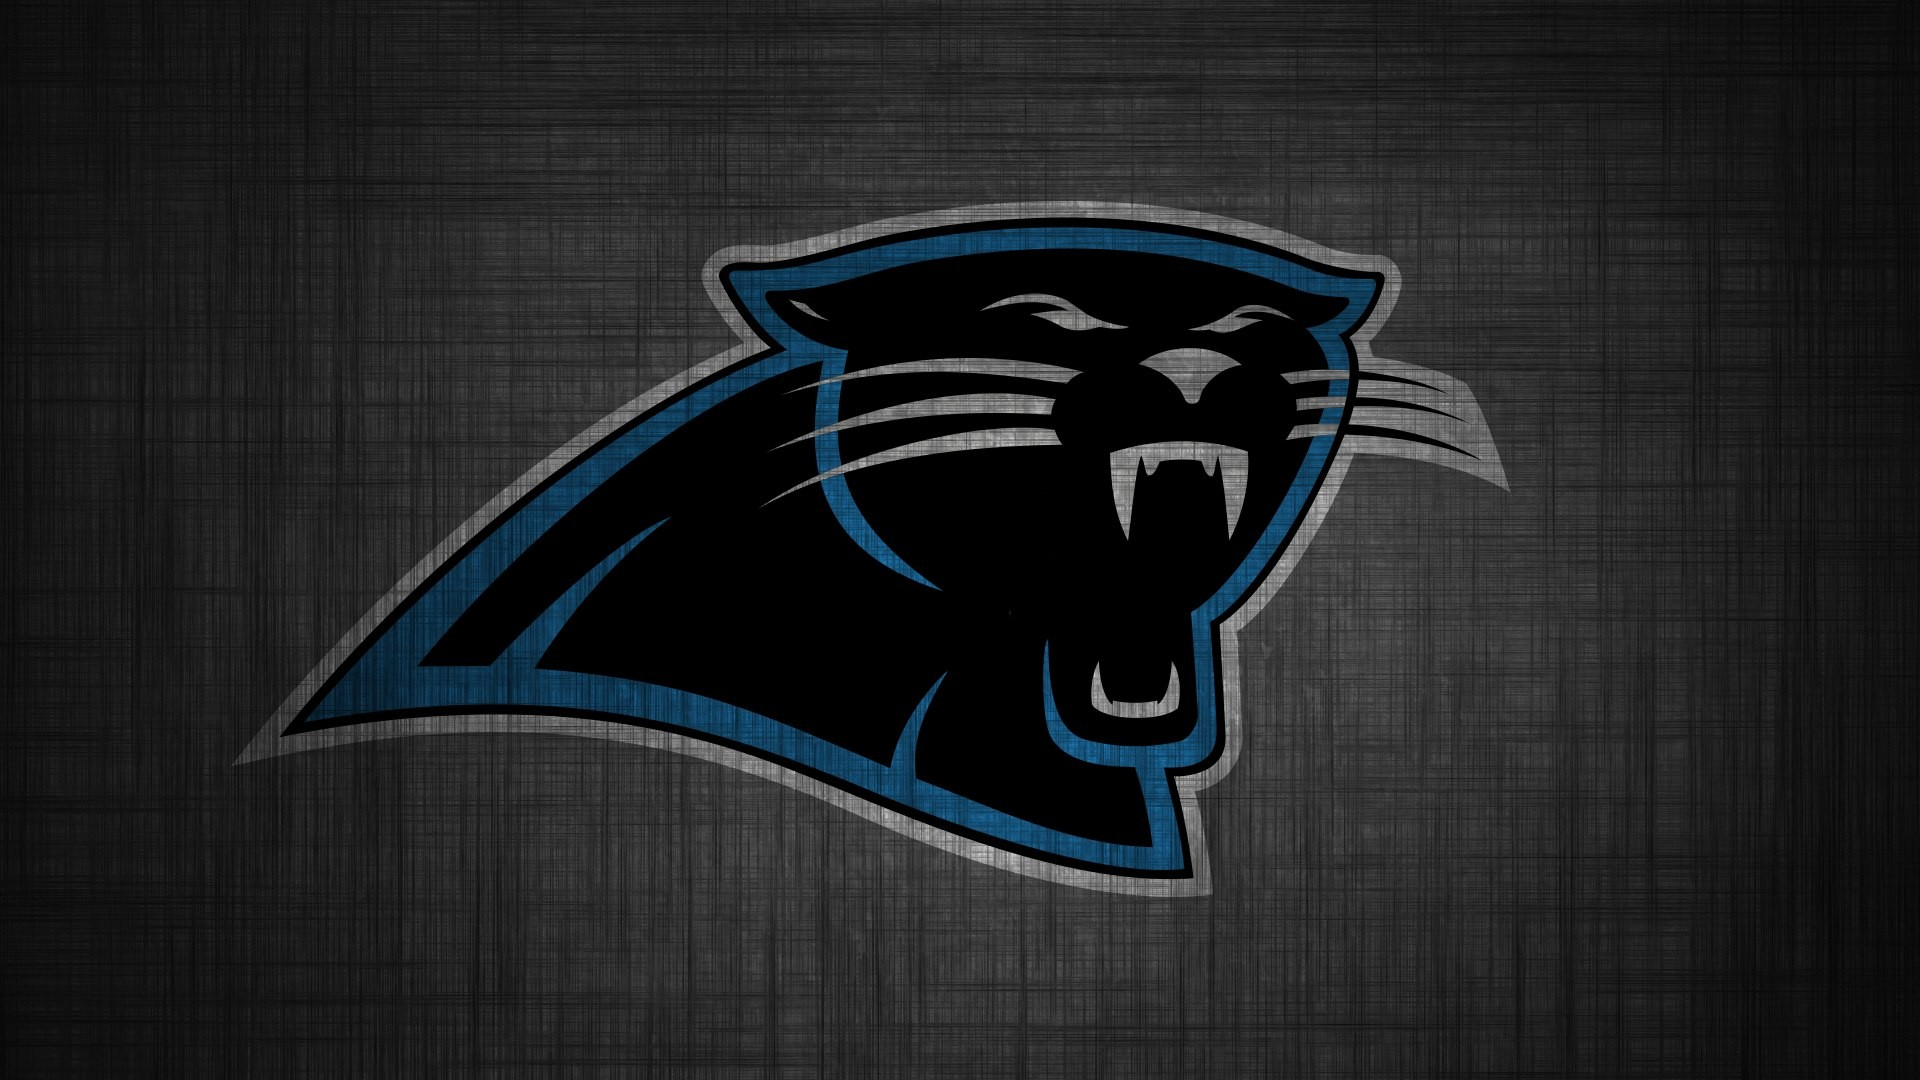 1920x1080 6 HD Carolina Panthers Wallpapers